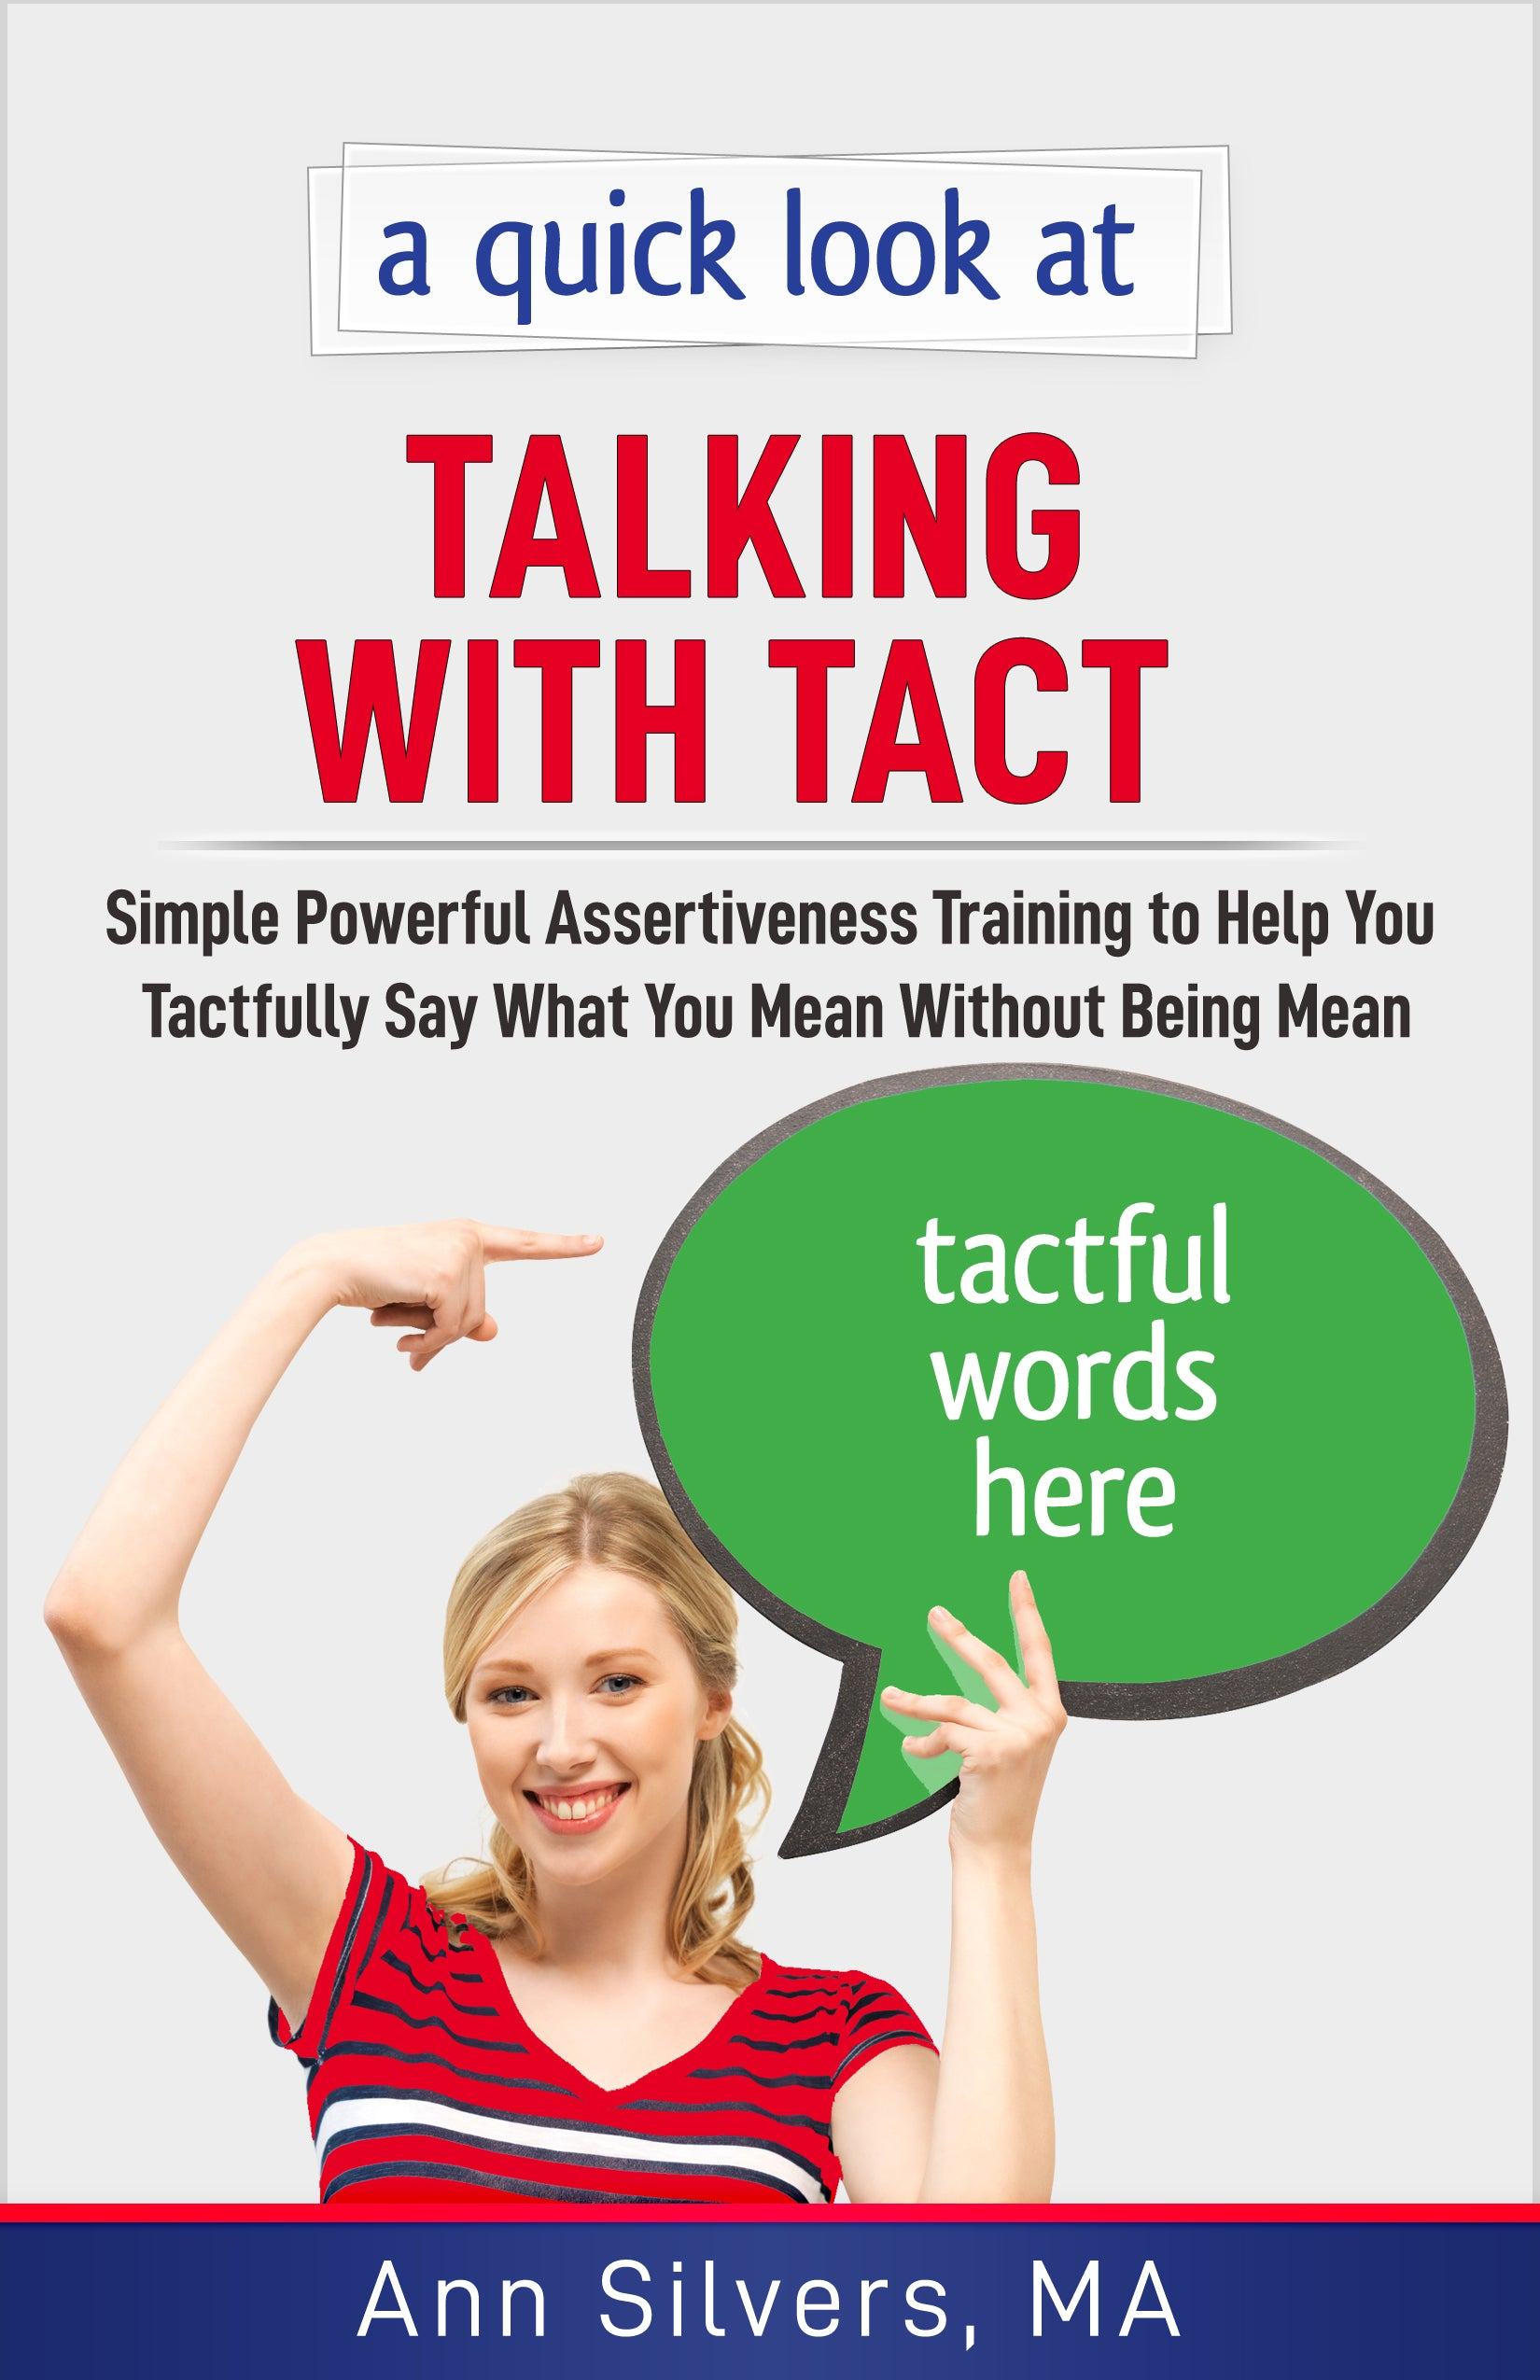 A quick look at Talking With Tact: Simple Powerful Assertiveness Training to Help You Tactfully Say What You Mean Without Being Mean